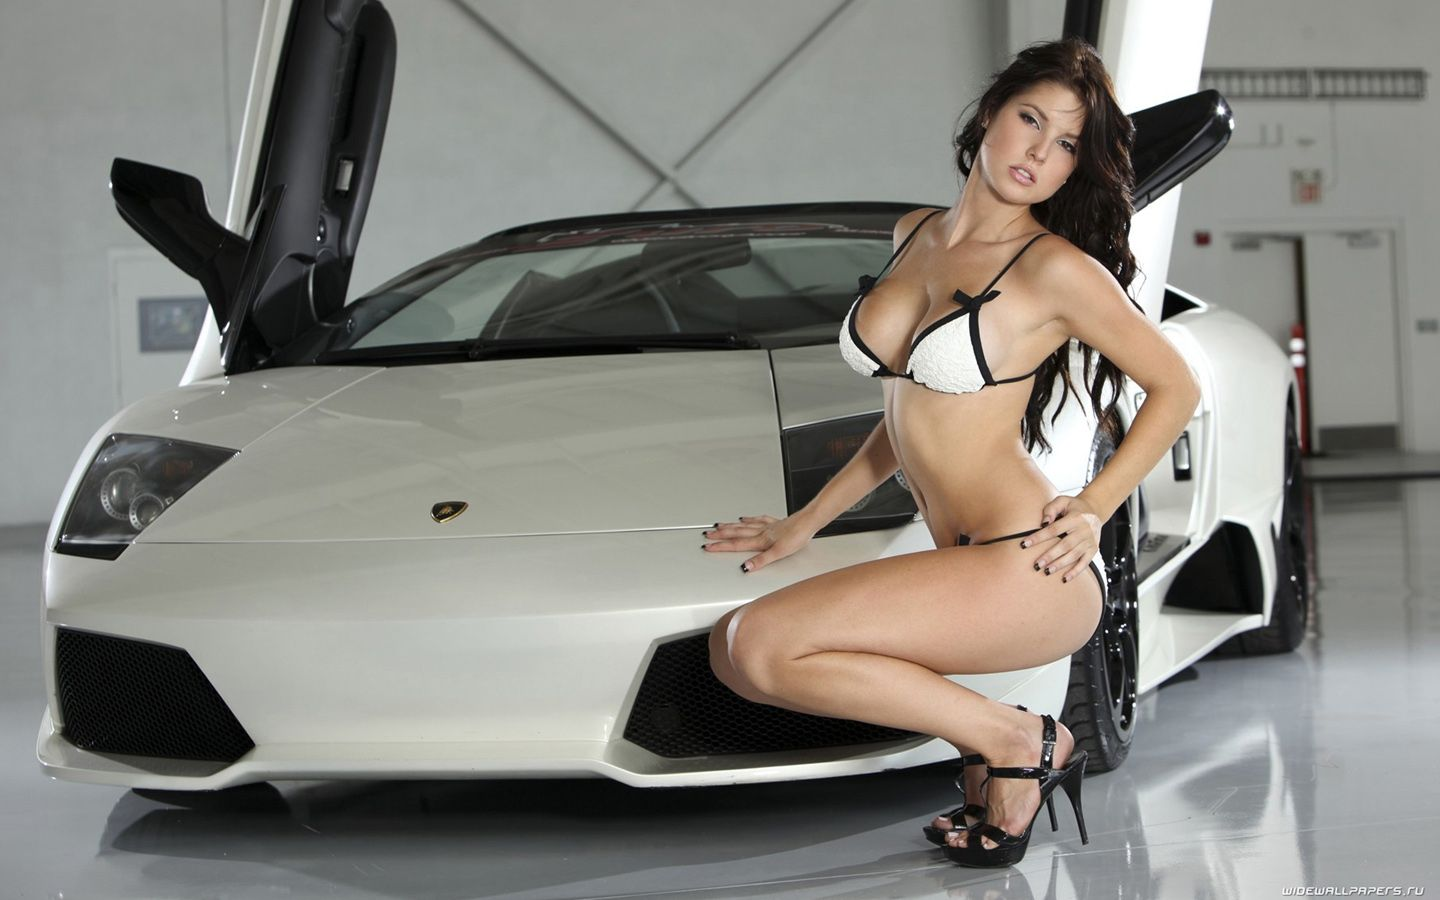 Hot Girls Naked On Cars